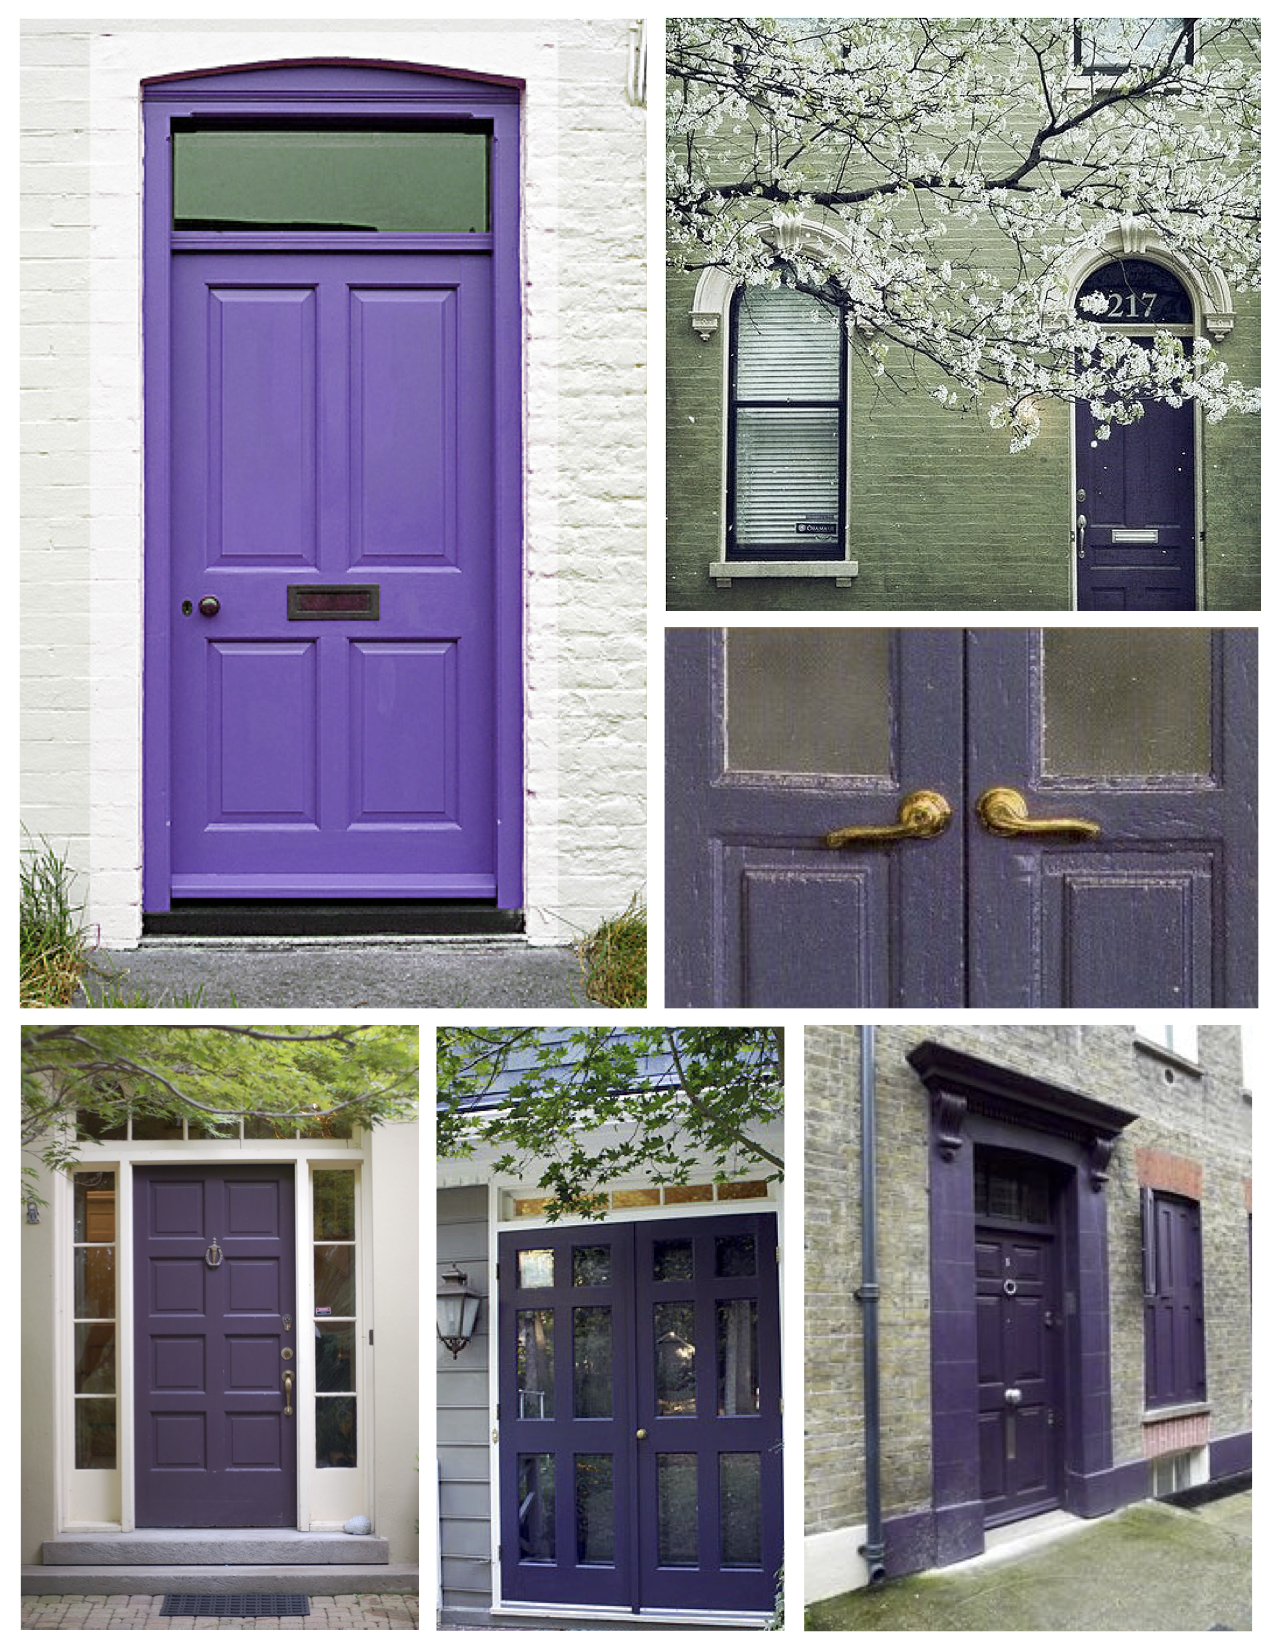 1650 #564487 Dramatic & Energetic: The Purple Hued Painted Exterior Door wallpaper Purple Front Doors 47051275